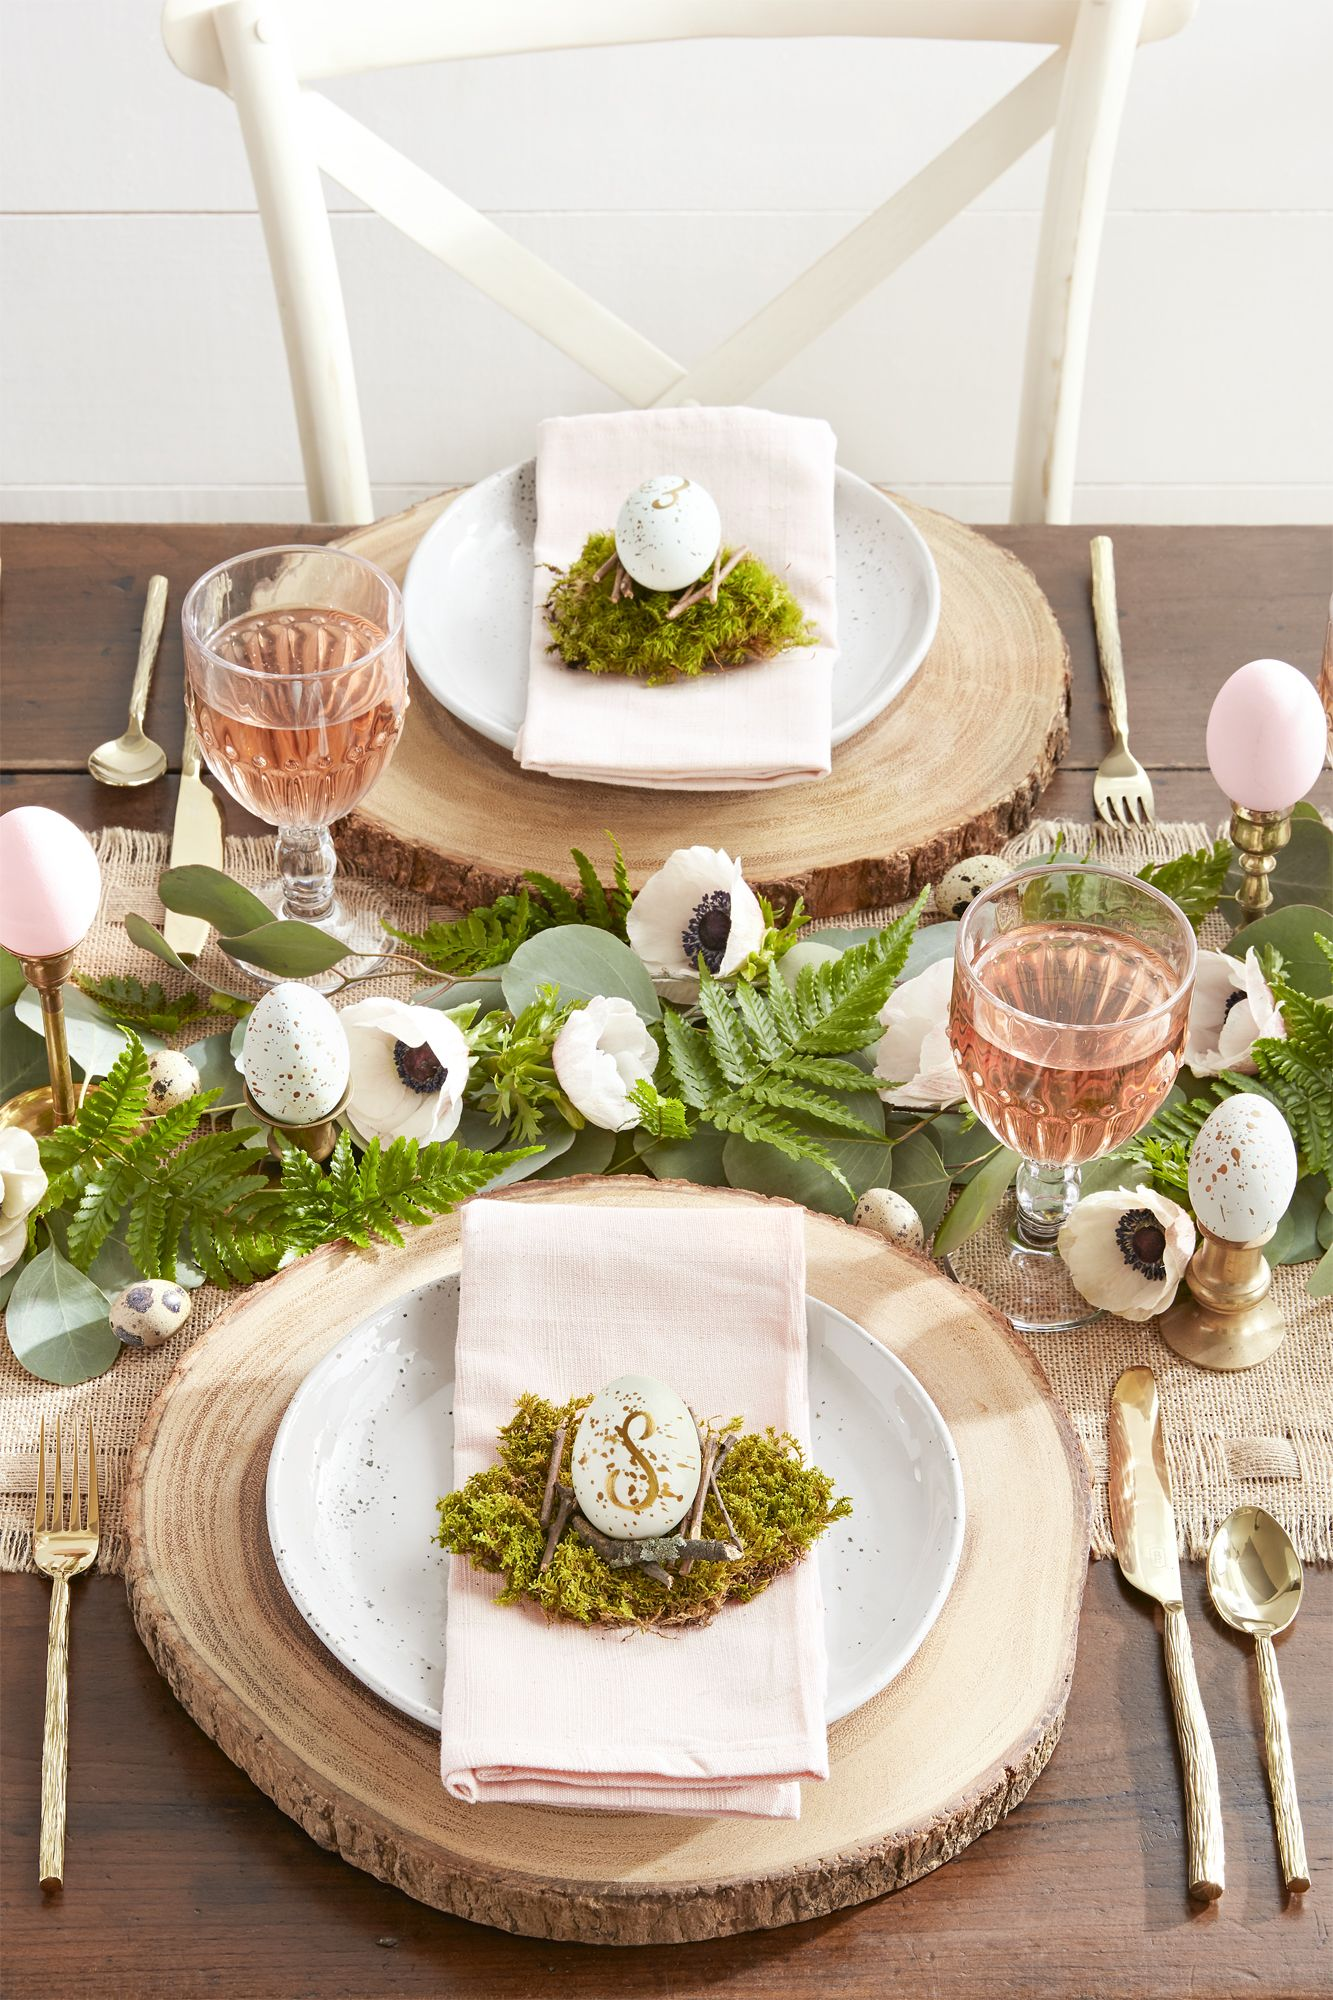 35 Best Easter Party Ideas Decorations Food and Games for Easter